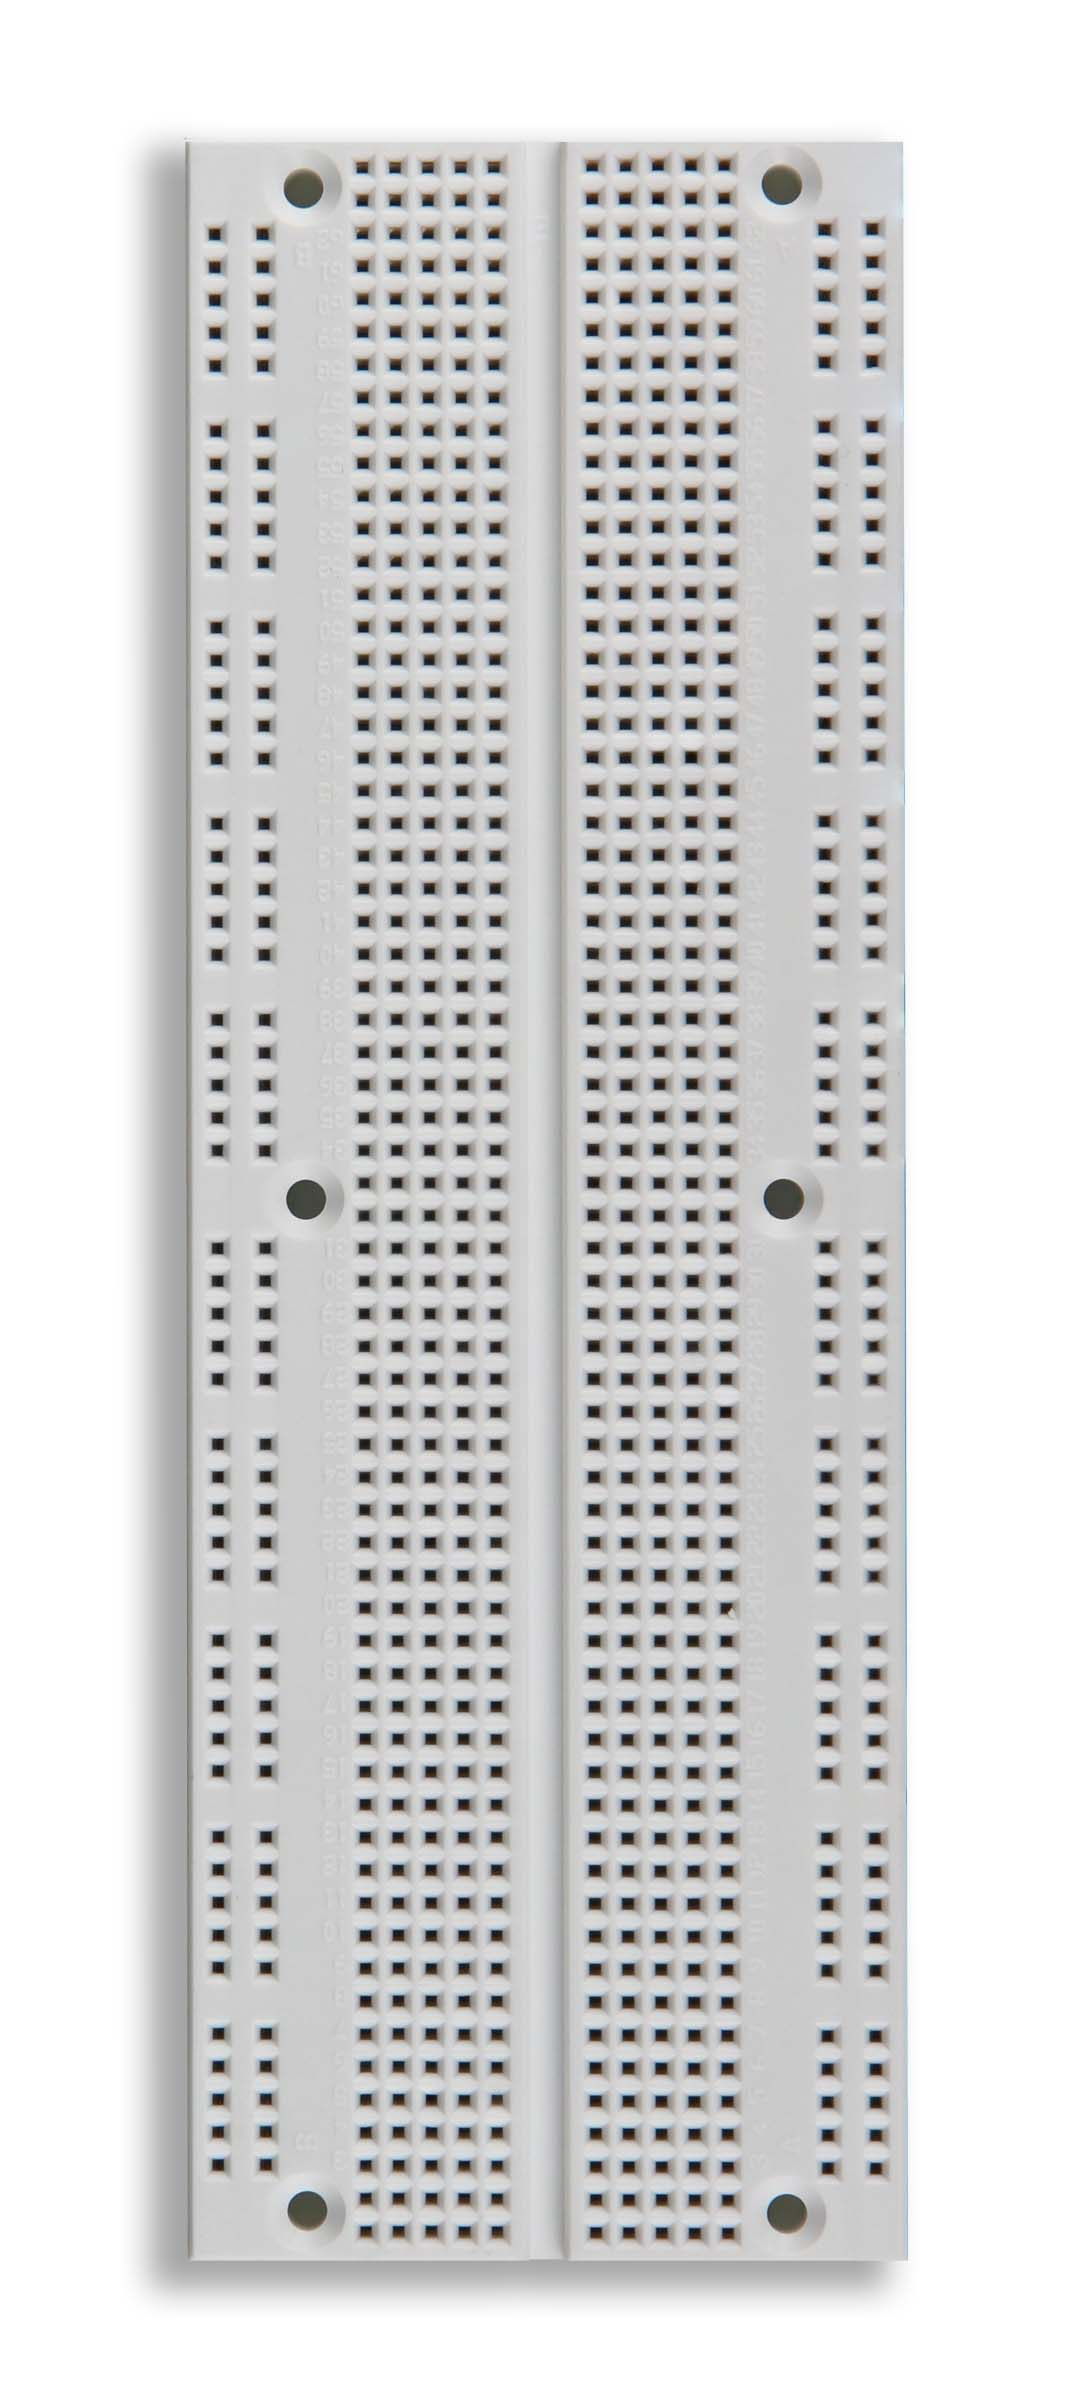 Global Specialties UBS-100 Solderless Breadboard, 840 Tie-Points Photo